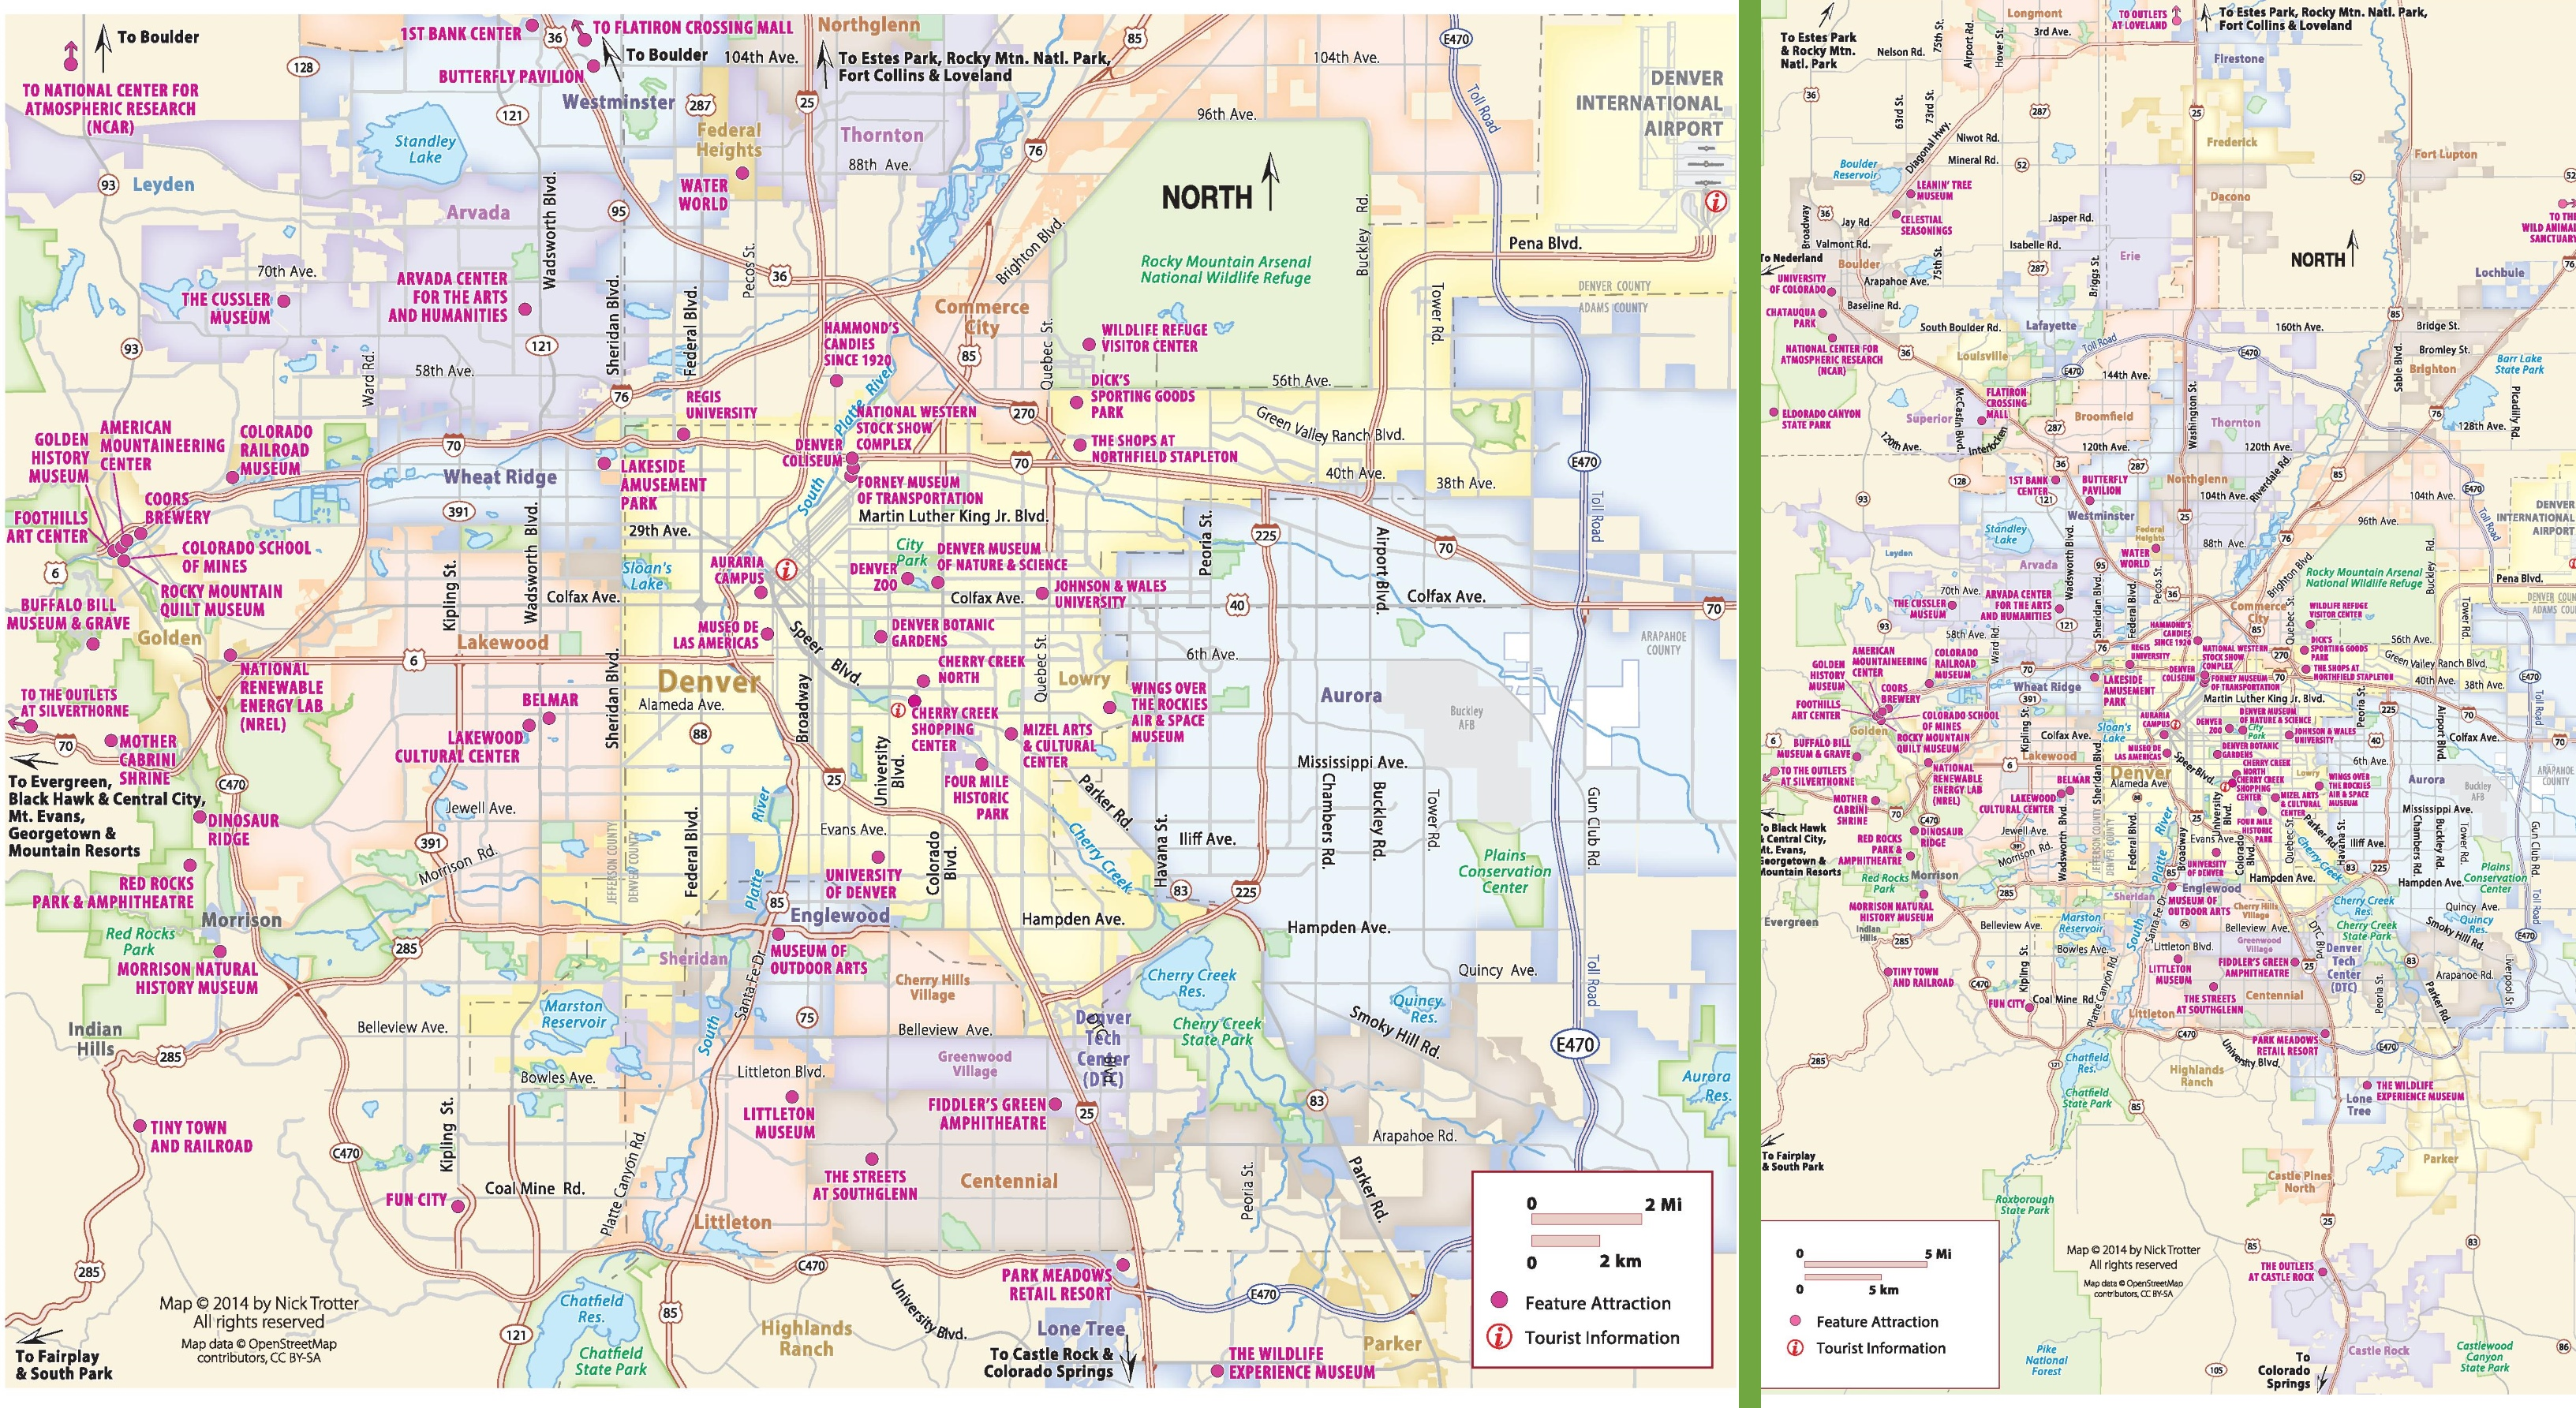 Denver tourist attractions map